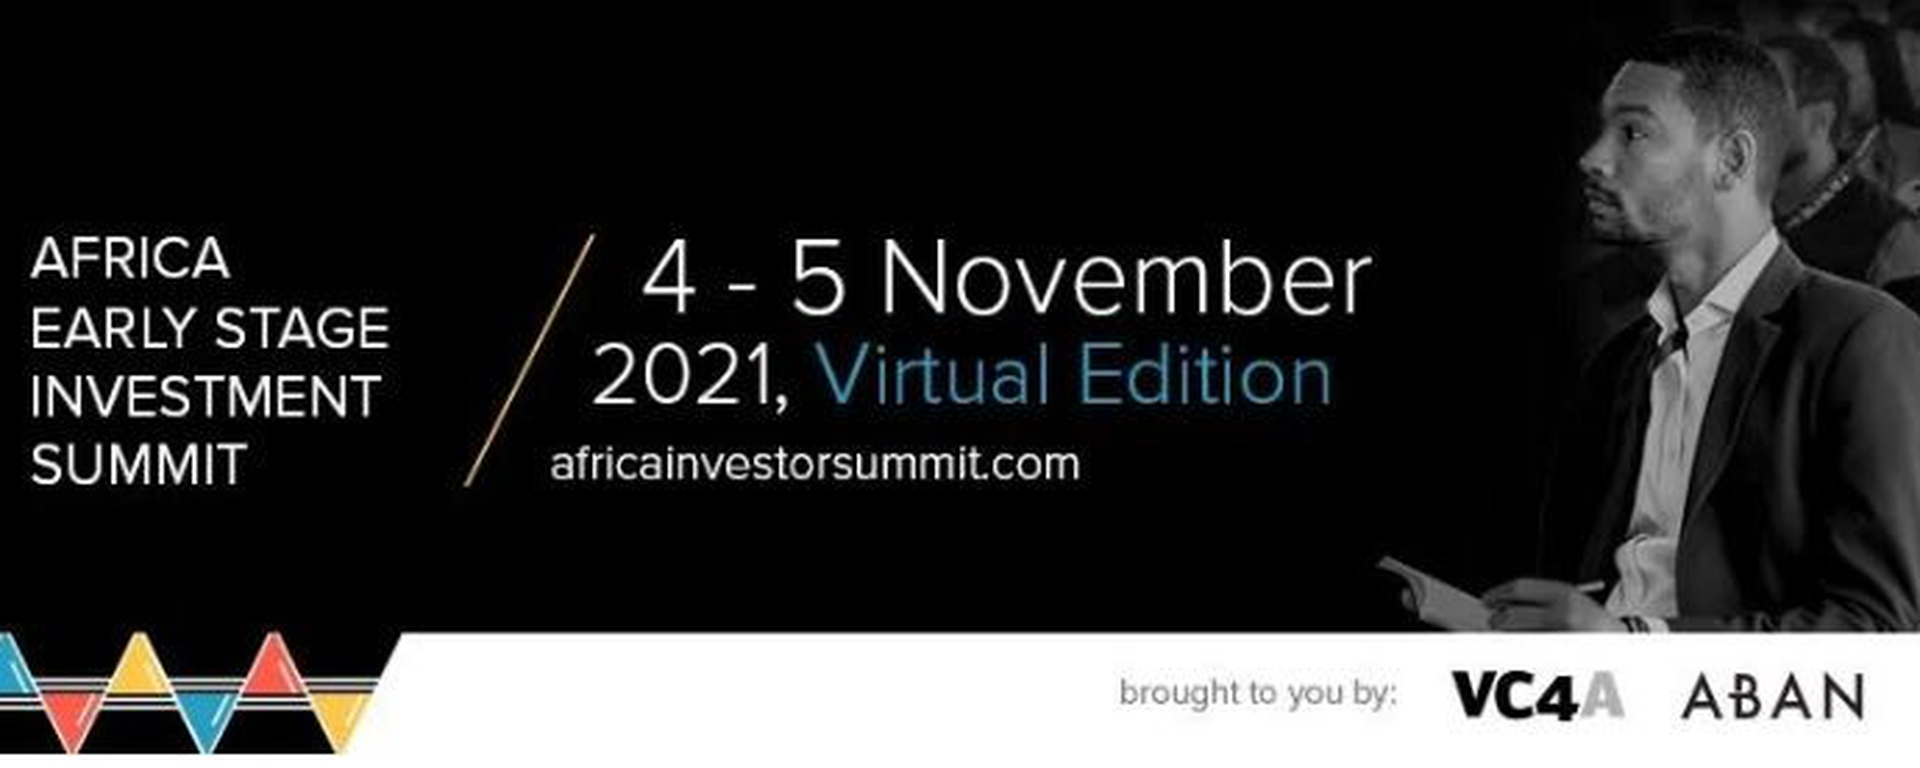 Venture Capital for Africa - Africa Early Stage Investor Summit 2021 Movemeback African event cover image